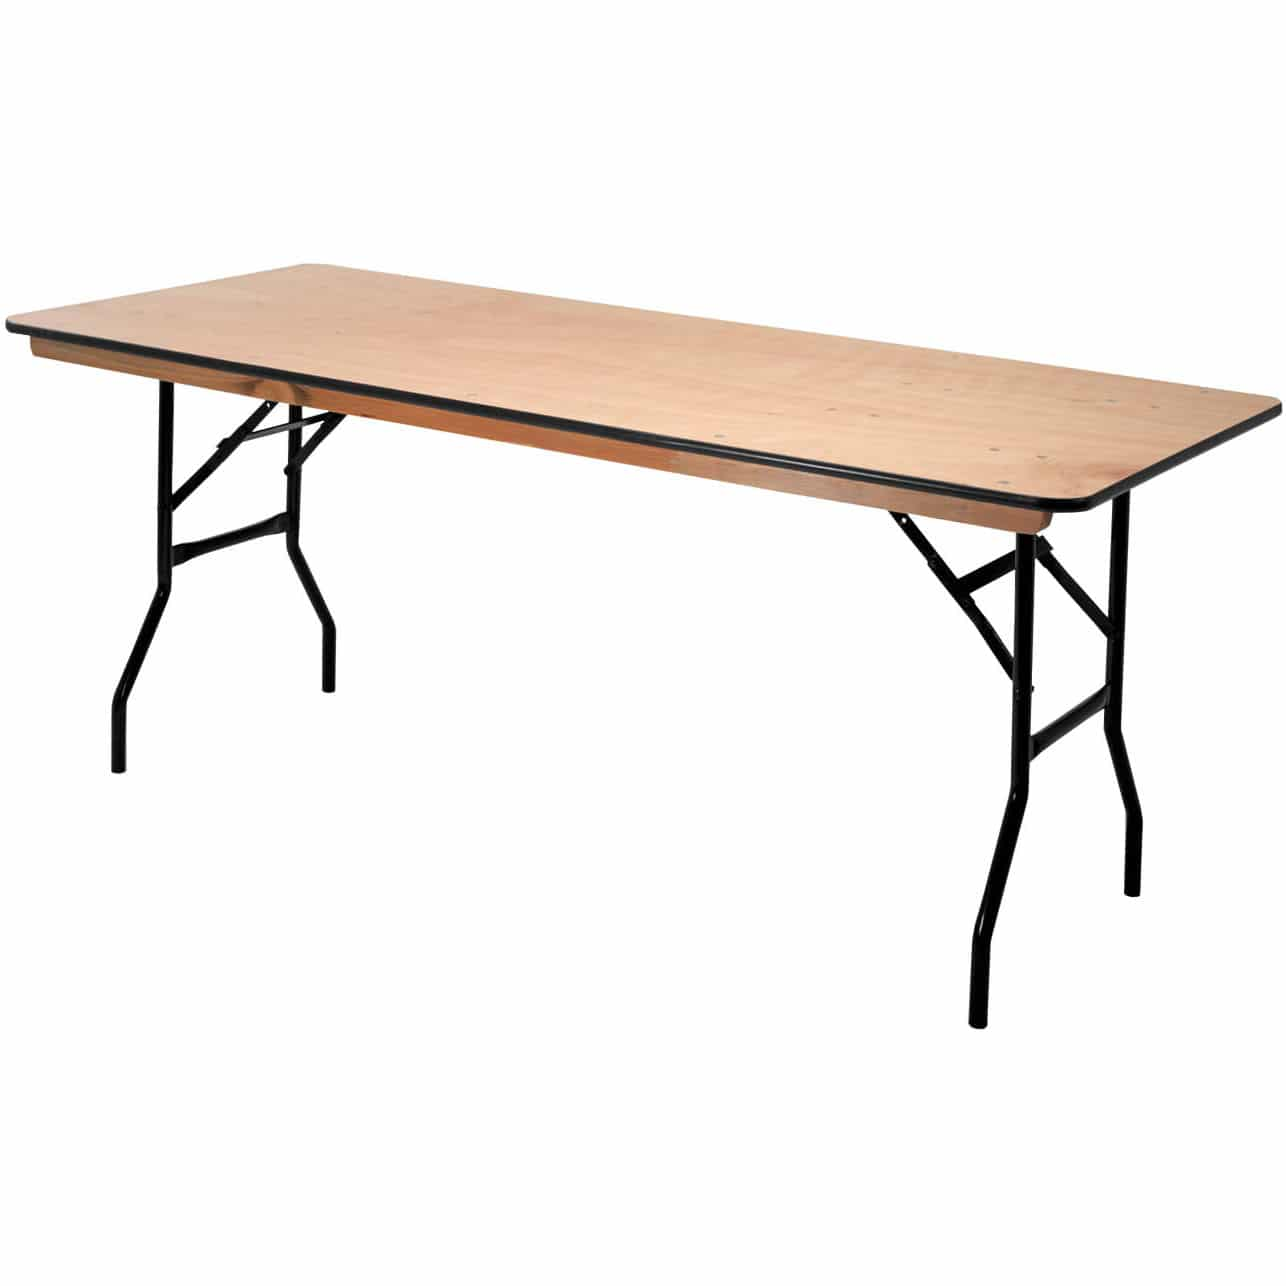 - 6ft X 2ft 6in X 15mm Wooden Folding Trestle Table - Ningbo Furniture